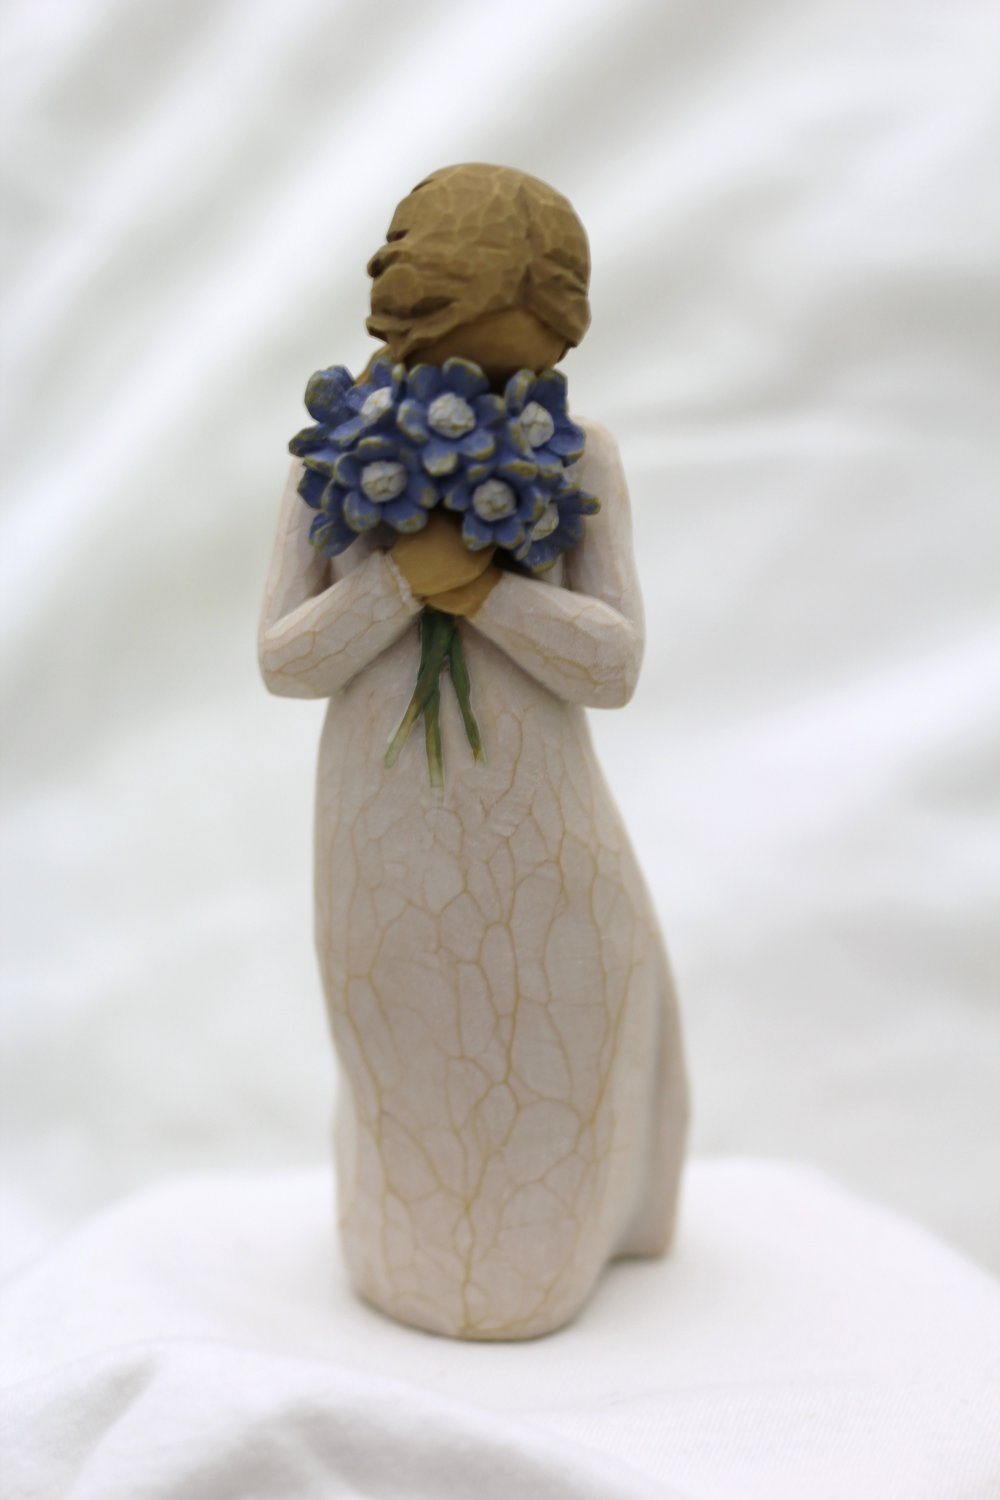 Willow Tree ANGEL Forget Me Not Susan Lordi New Gift figurine statue blue flowers